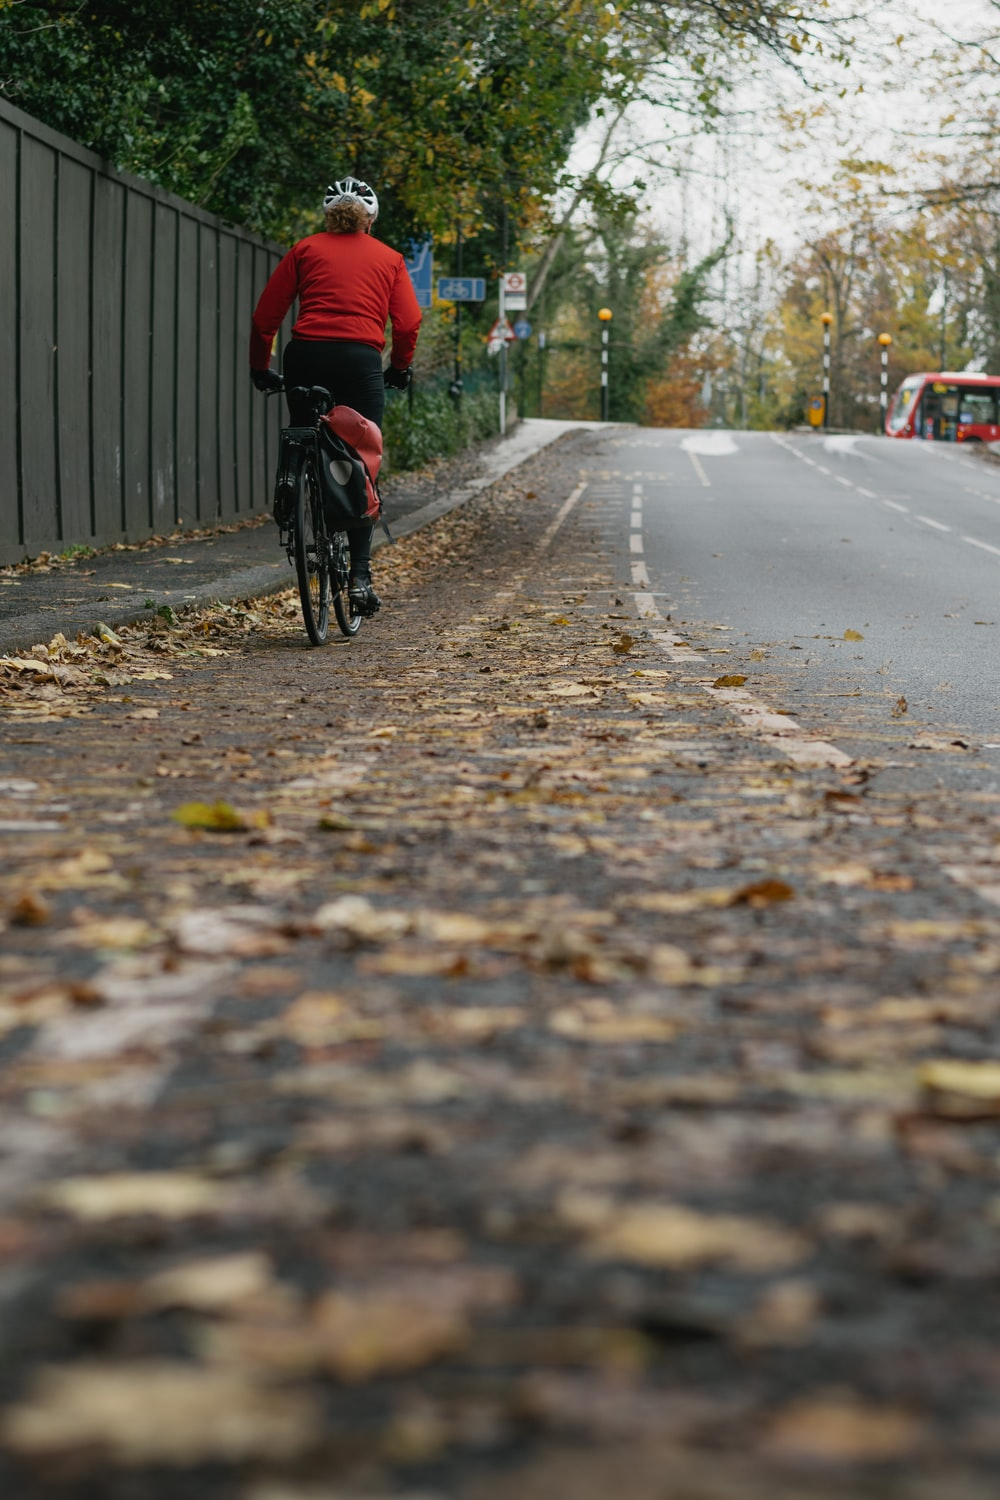 man in red jacket riding bicycle on road during daytime